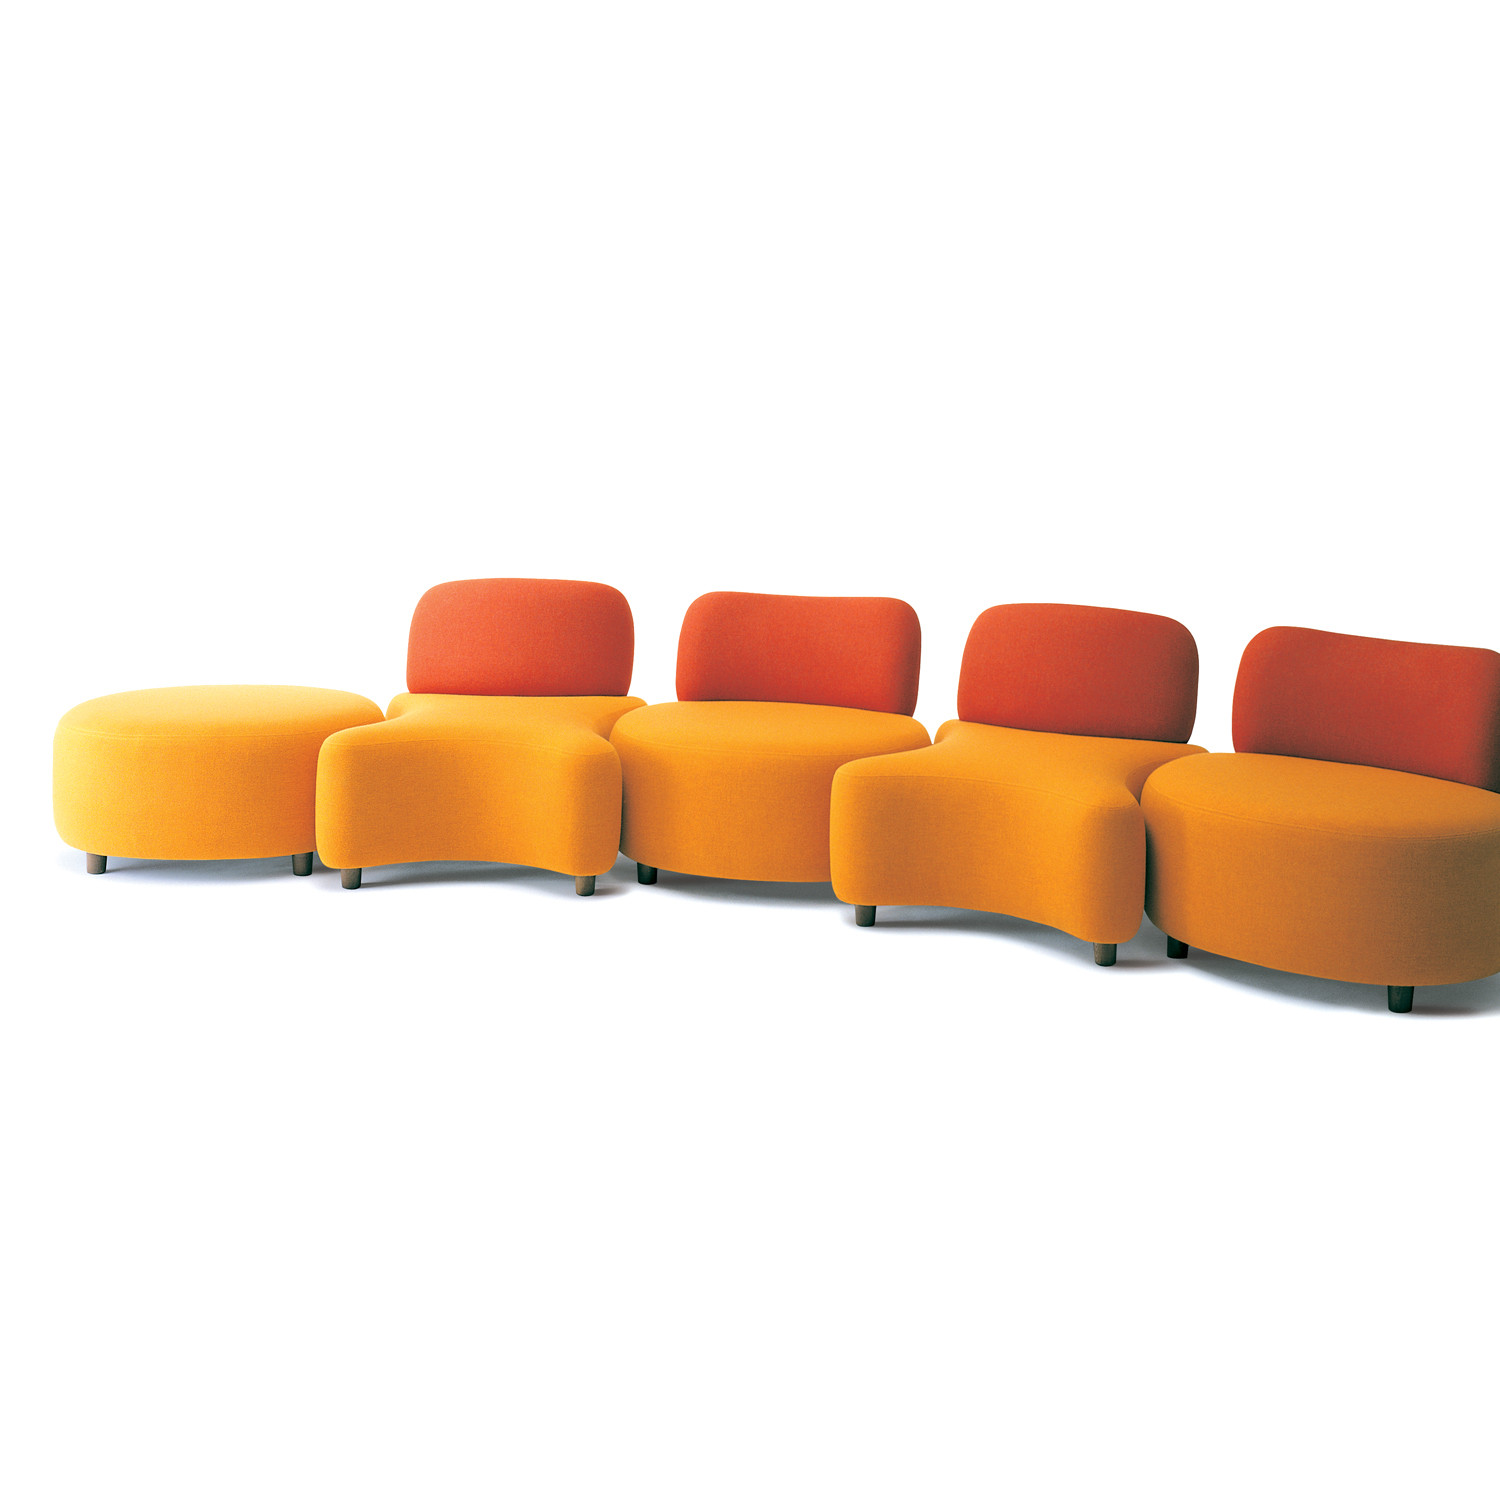 HM61 Oxo Modular Soft Seating